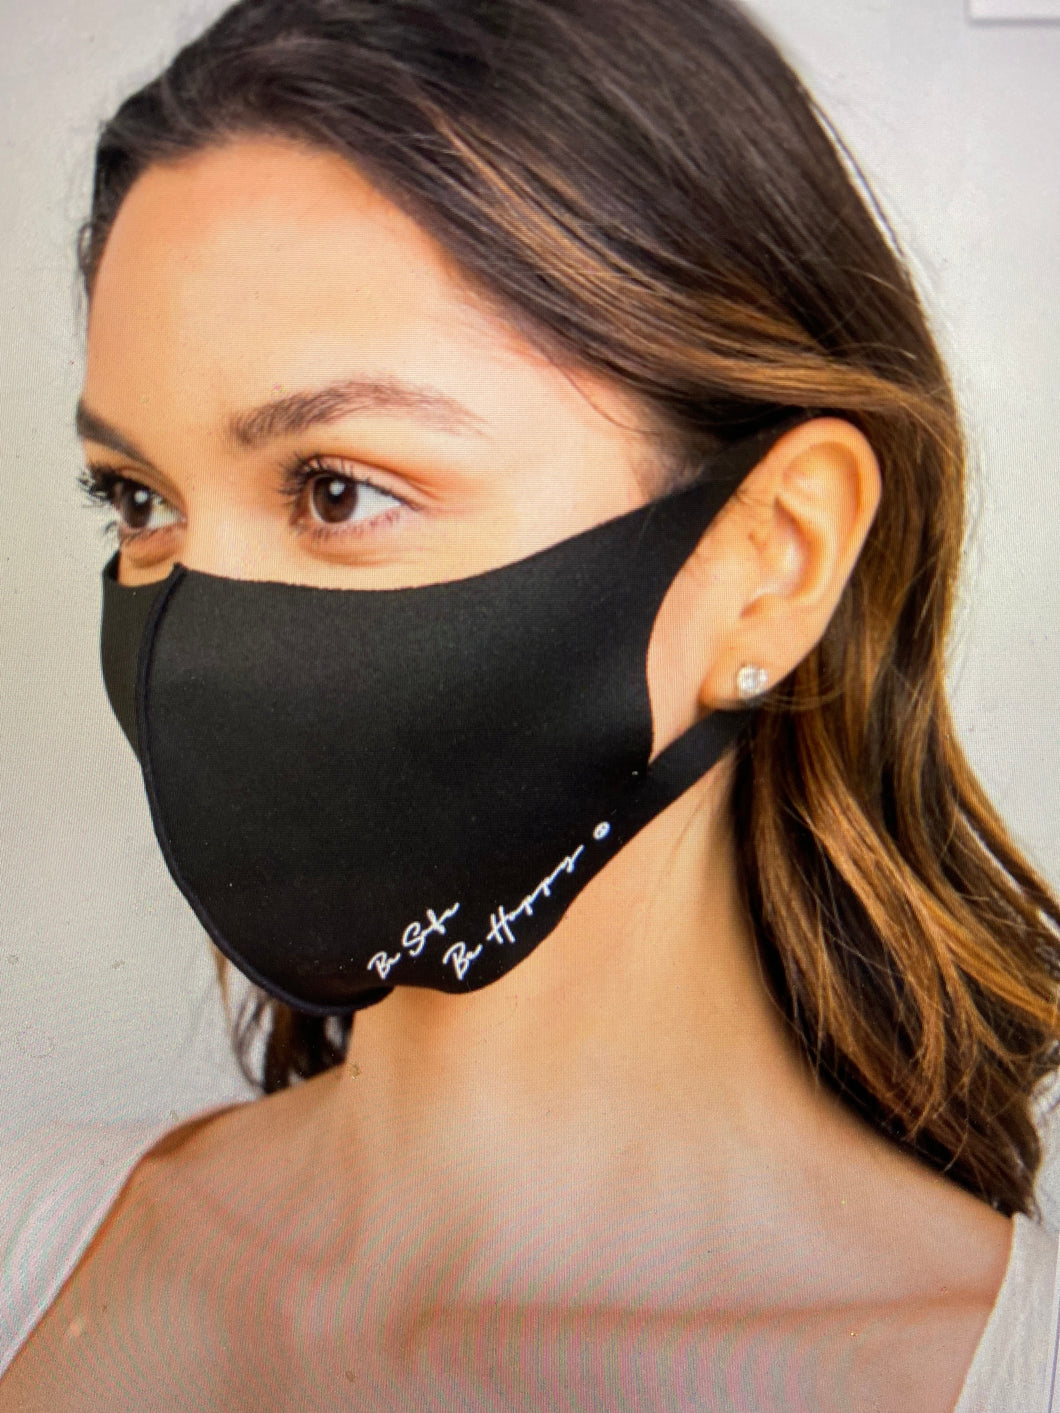 Be Safe, Be Happy Mask | New Fashion Women Dresses, Swimwear, Shoes, and accessories online!